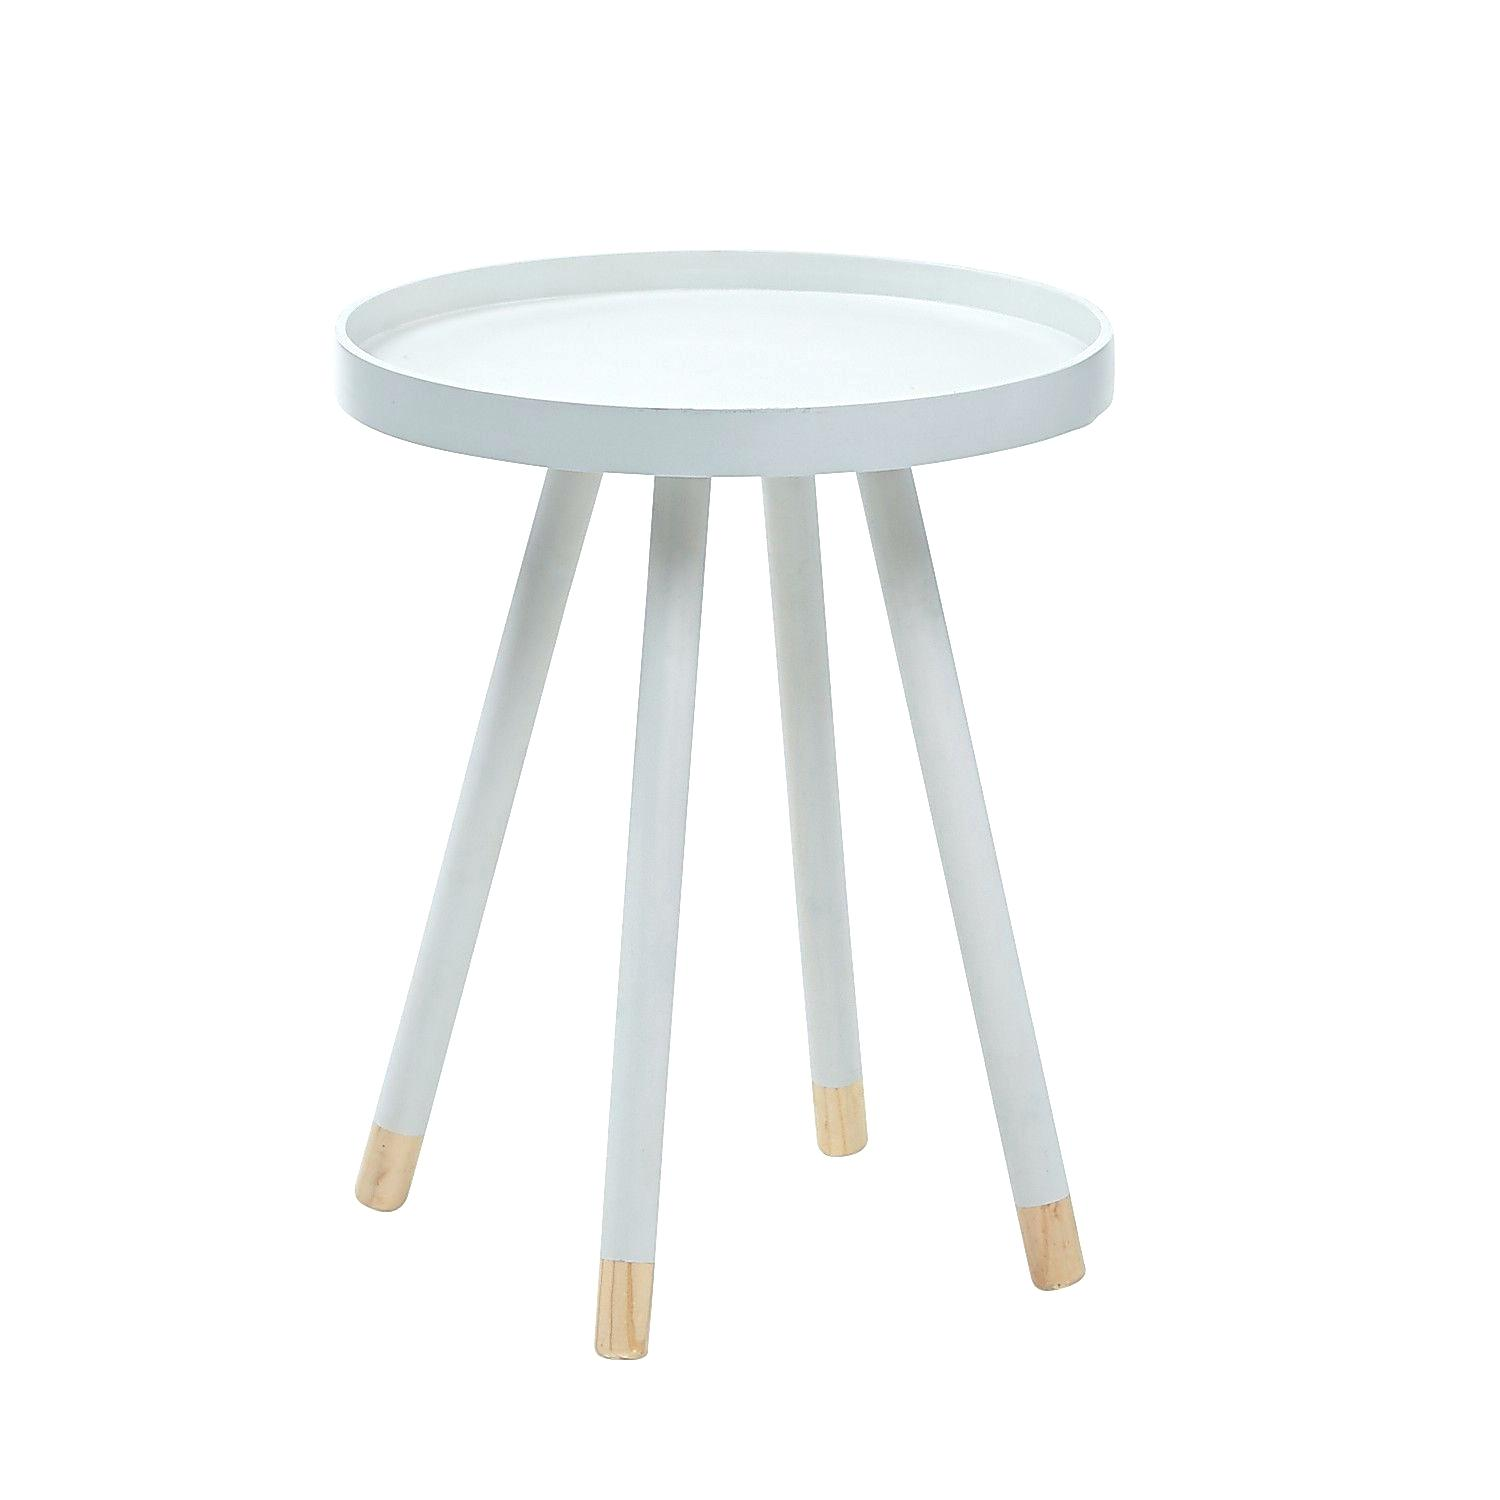 mid mod gray accent table zoom pier tables kenzie grey clip light gold lamp shades for lamps kitchen fixture blue tiffany keter ice bucket medium oak end decor cabinets